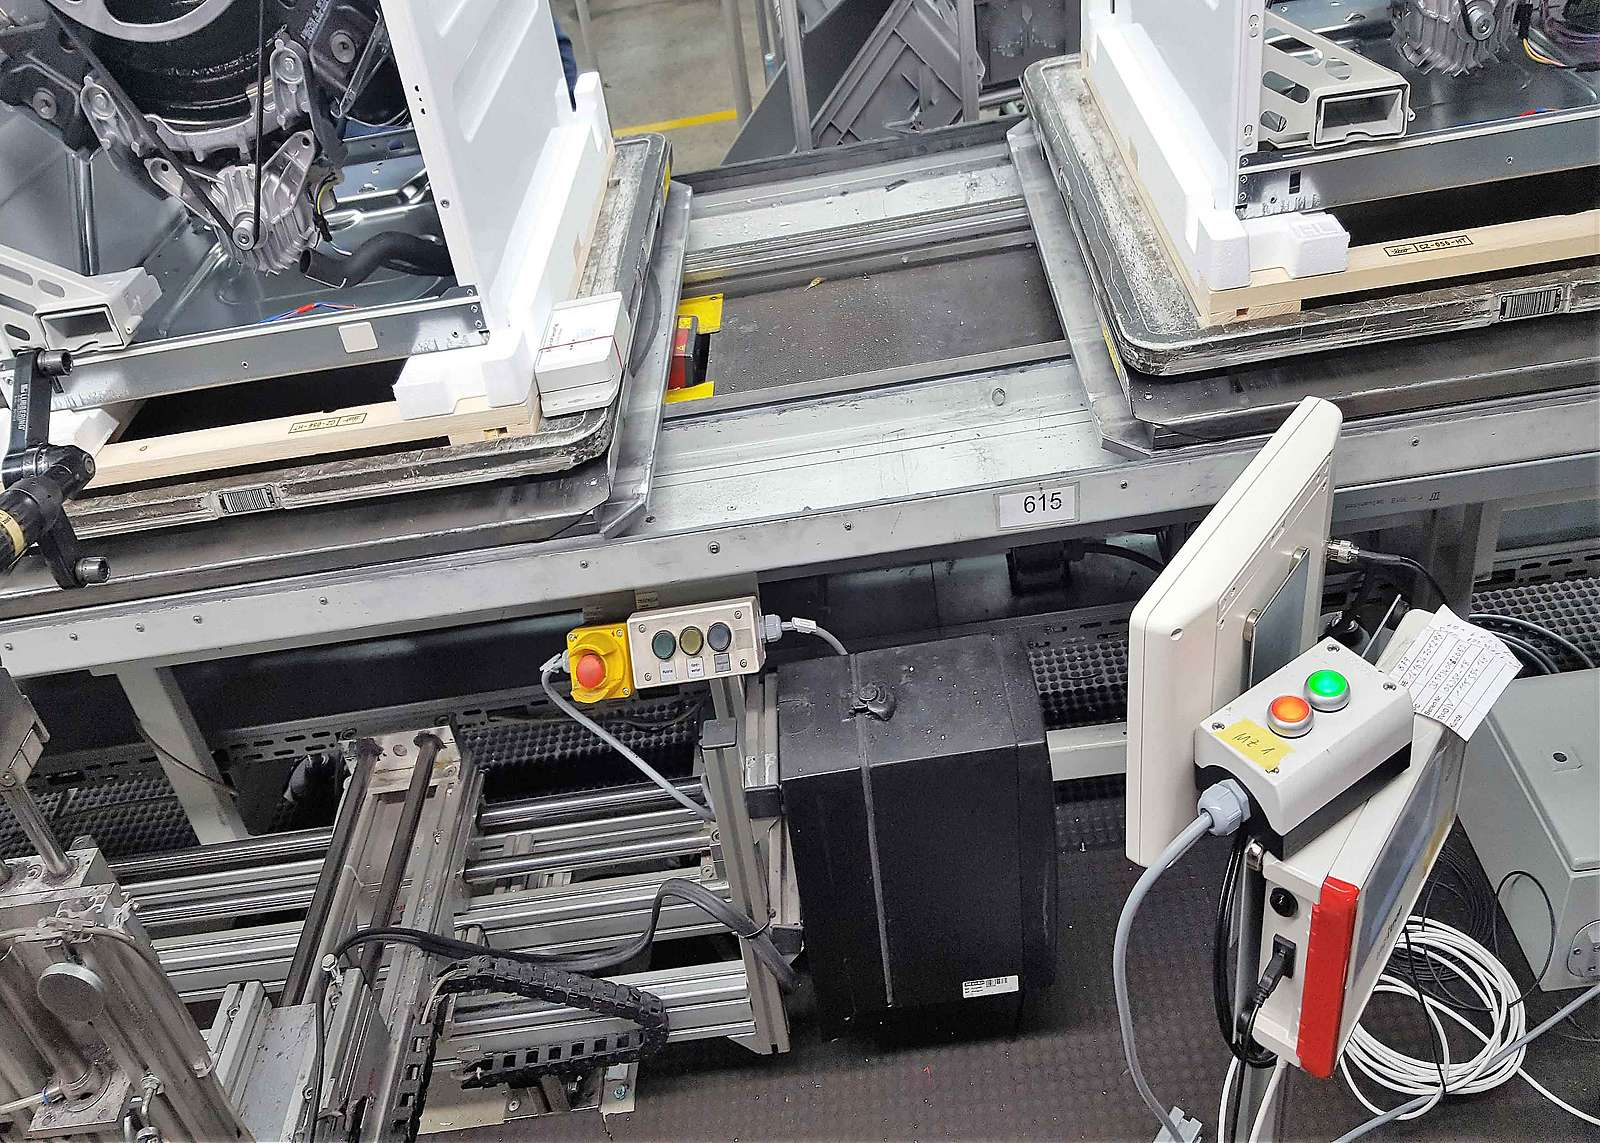 Intelligent sensors in the production of washing units are part of the Industry 4.0 concept